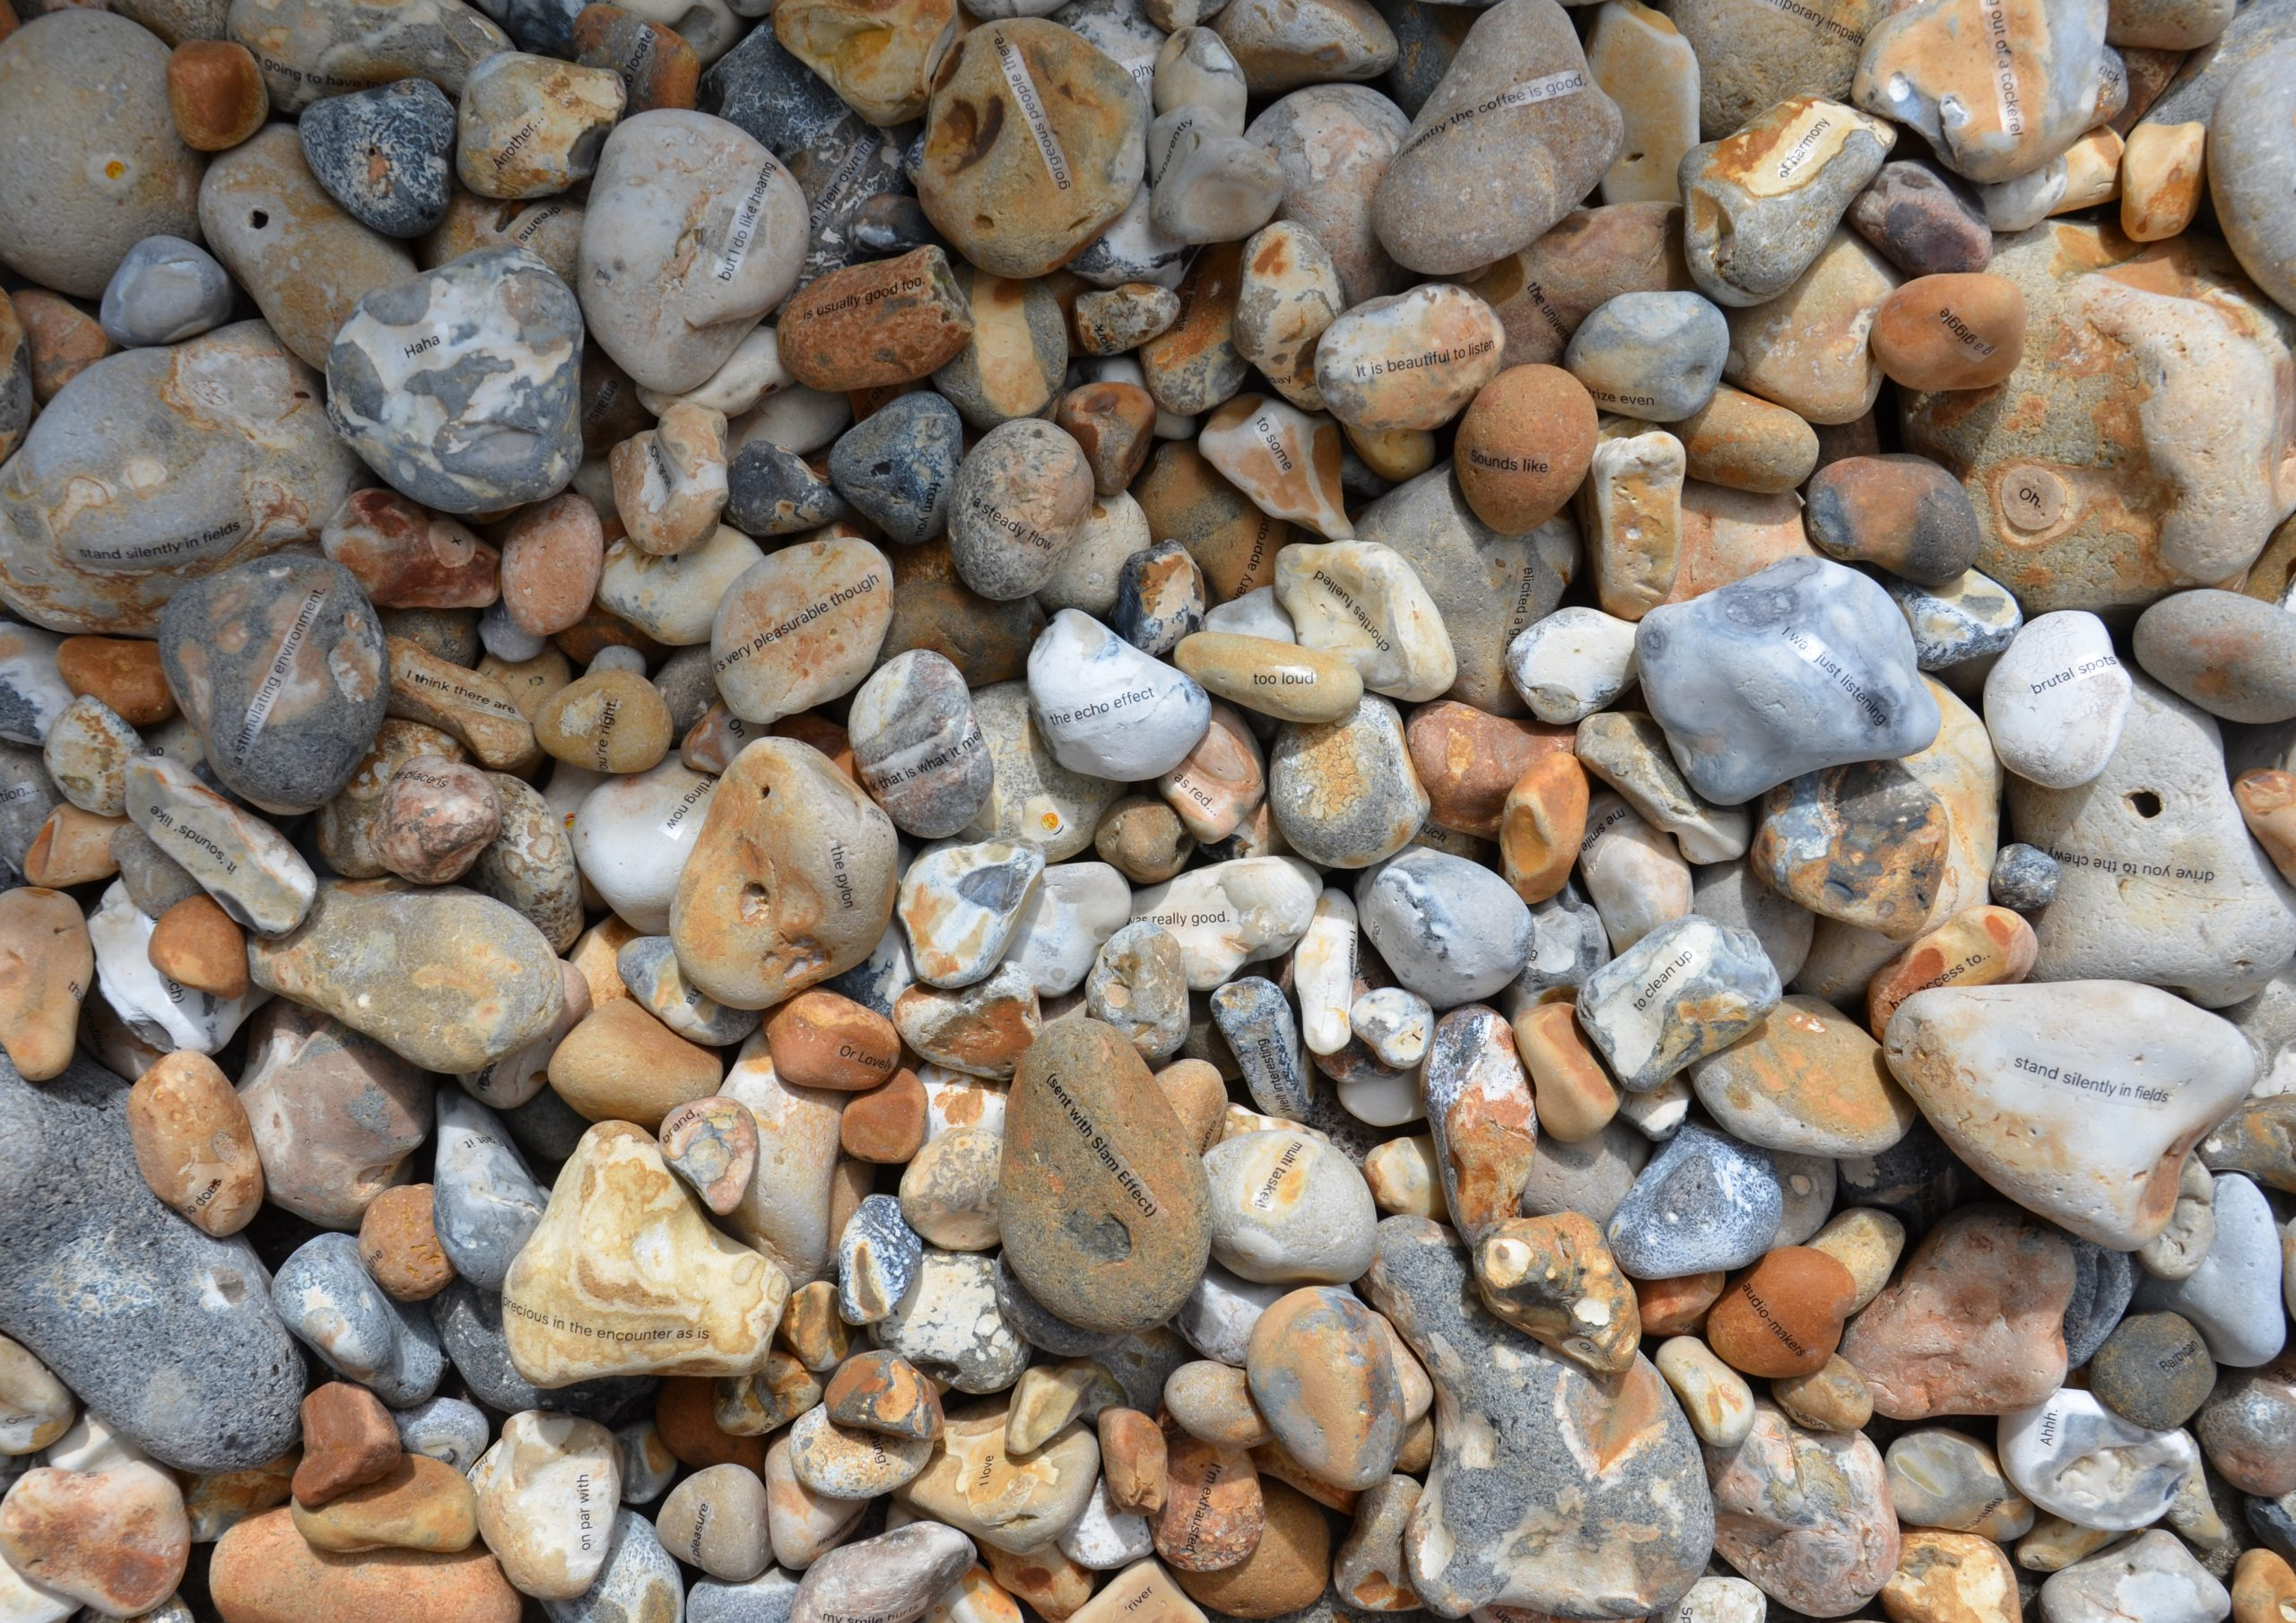 Universal Crepitation Featured Image - Photograph of stones with text on them, light shining on them from the right